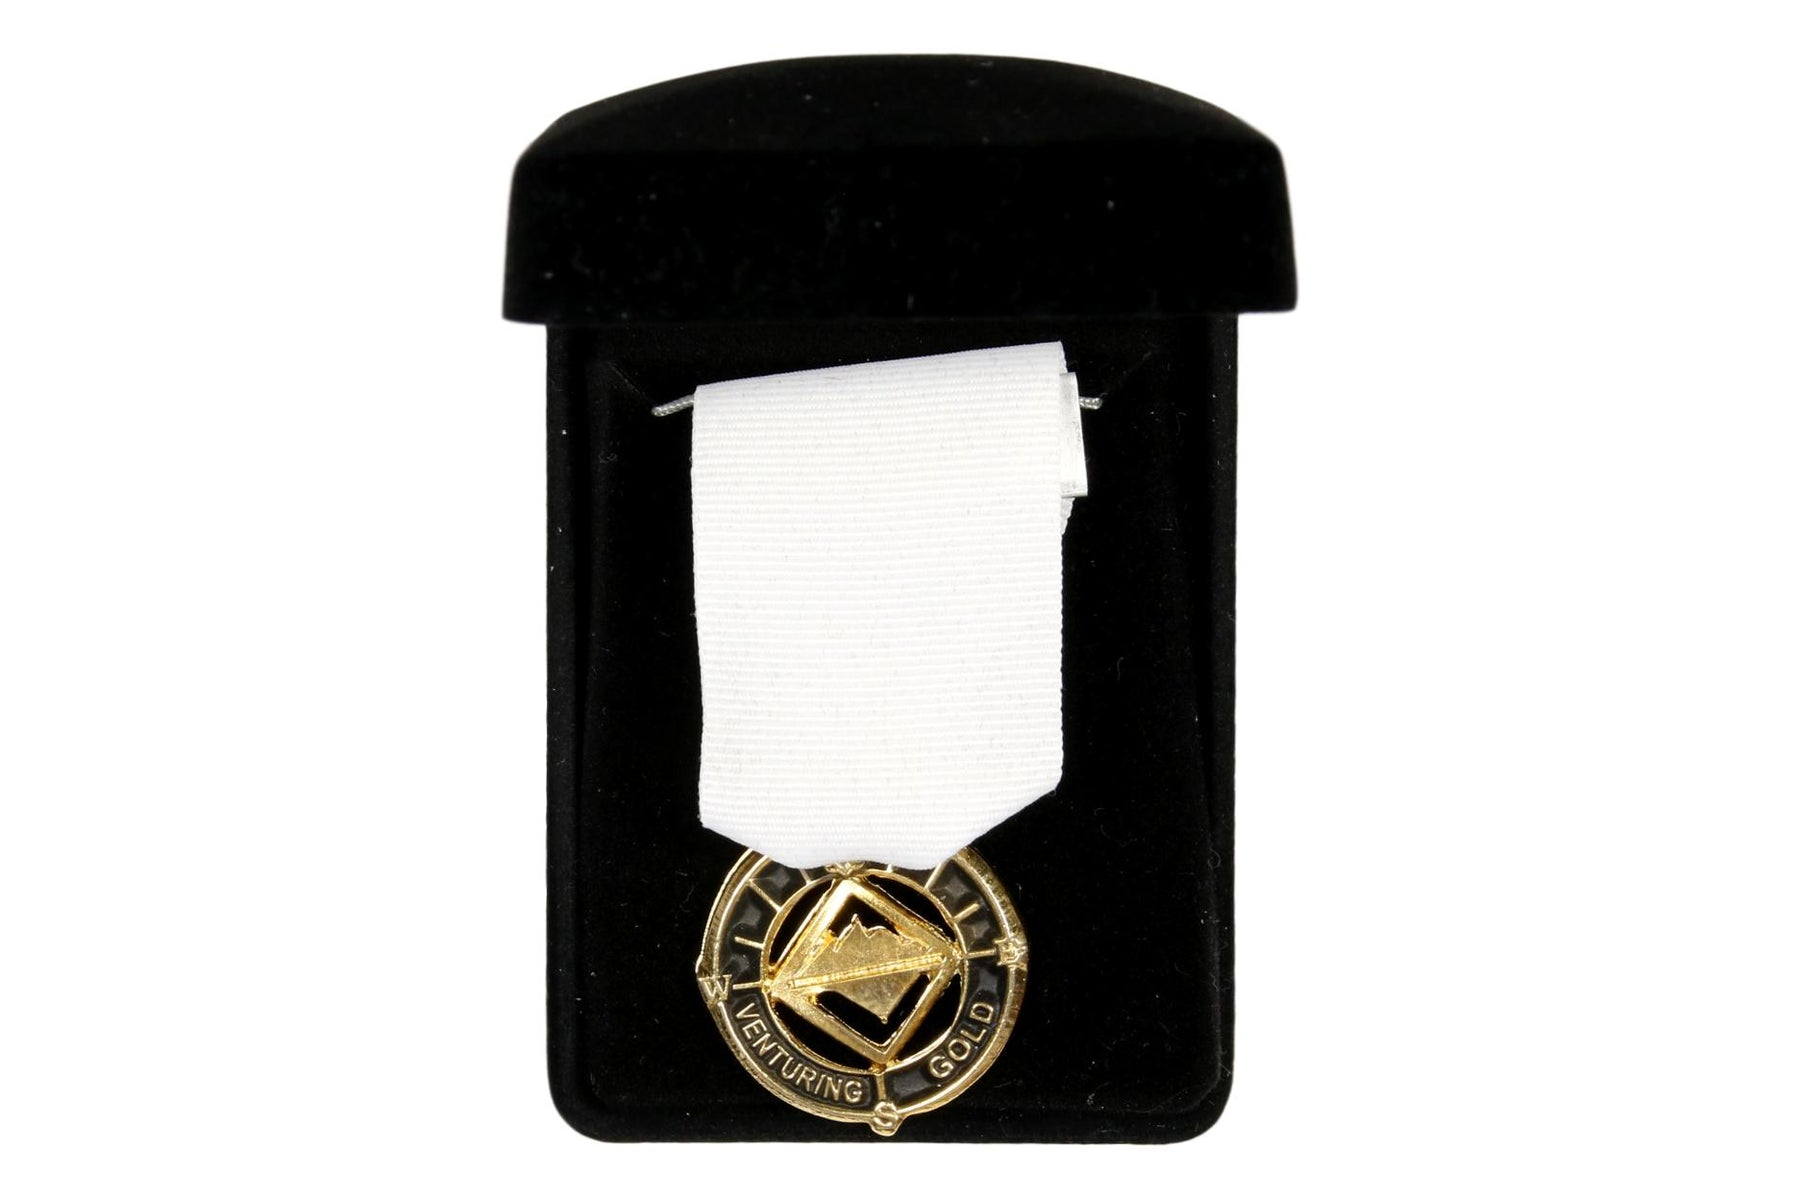 Venturing Gold Award Medal Black Highlights